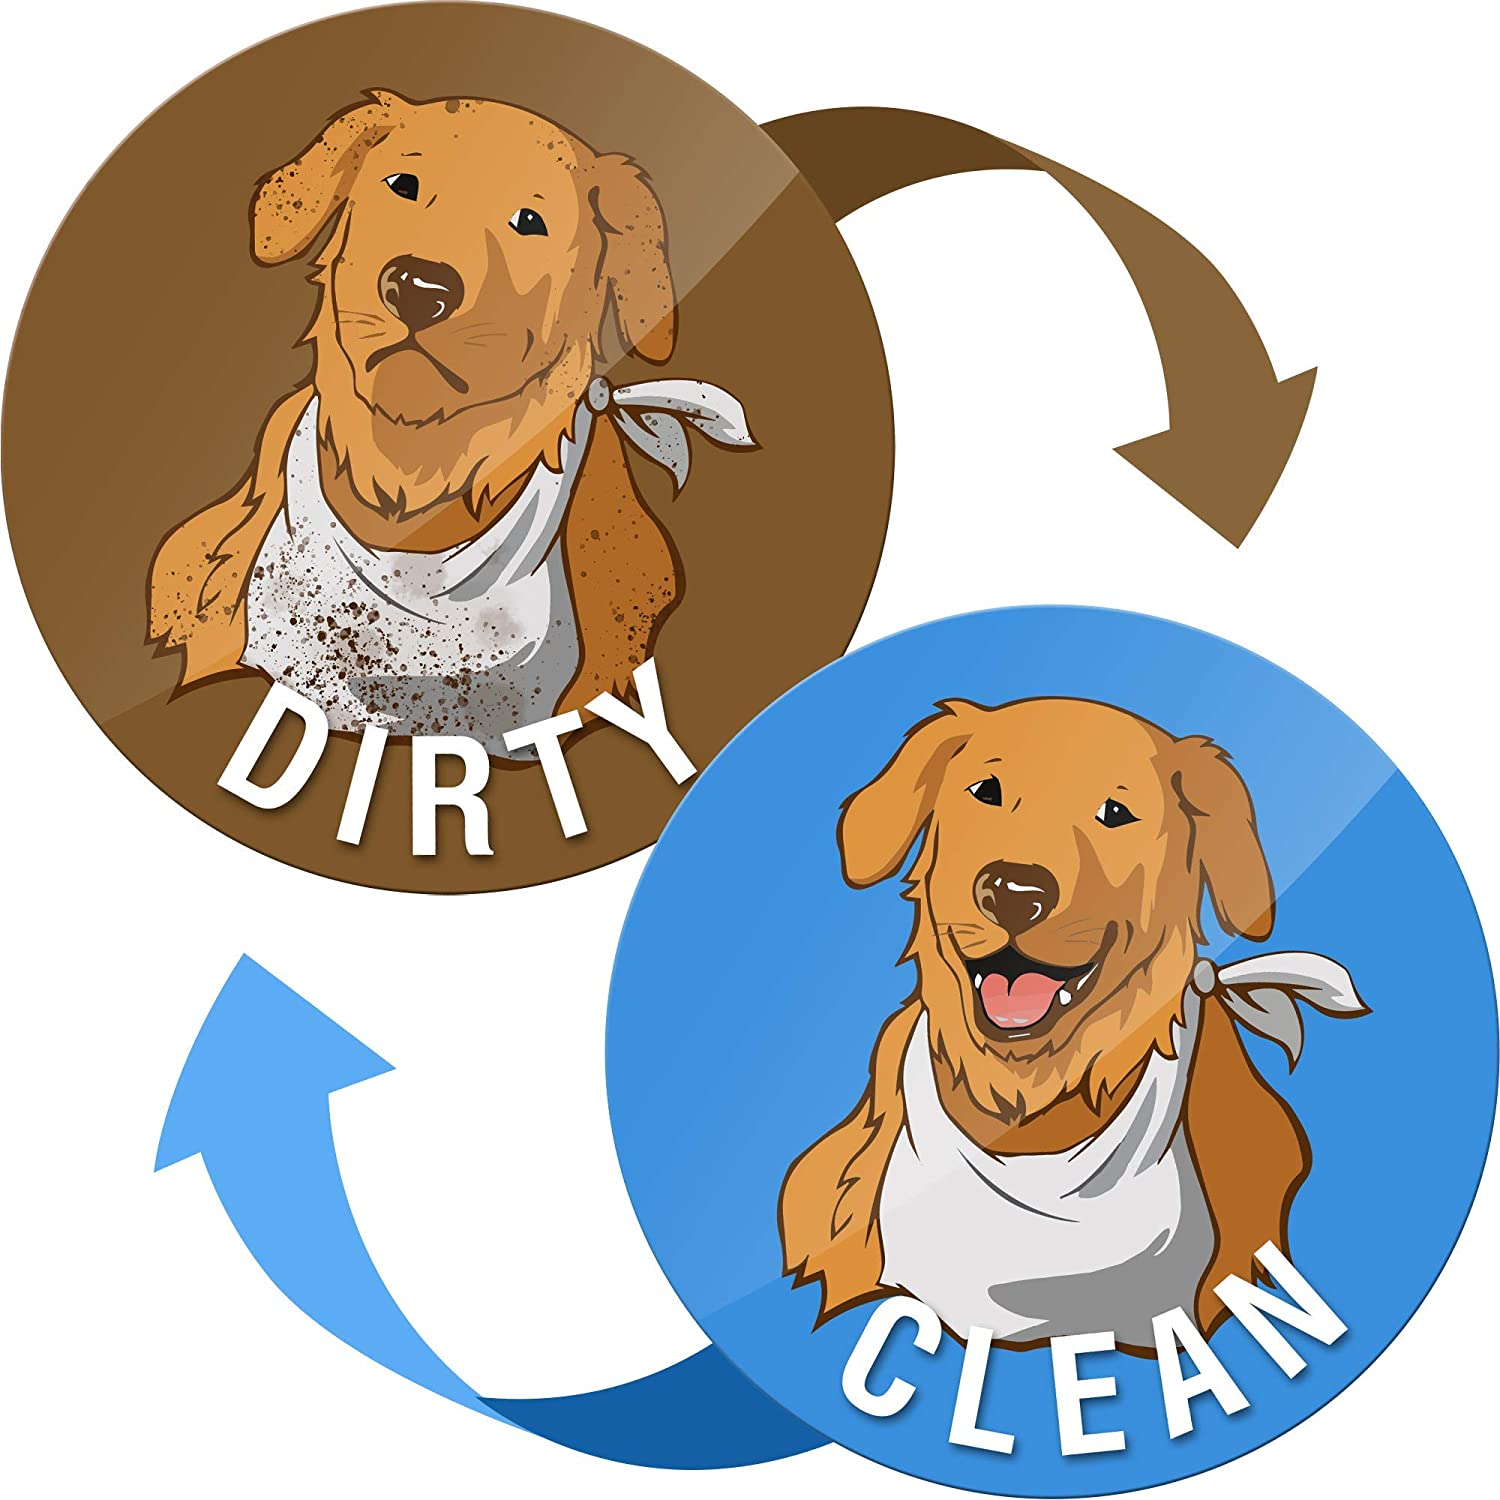 Dishwasher Magnet Clean Dirty Sign Indicator - Clean Dirty Dishwasher Magnet Funny Golden Retriever - Waterproof and Double Sided Flip with Bonus Metal Plate